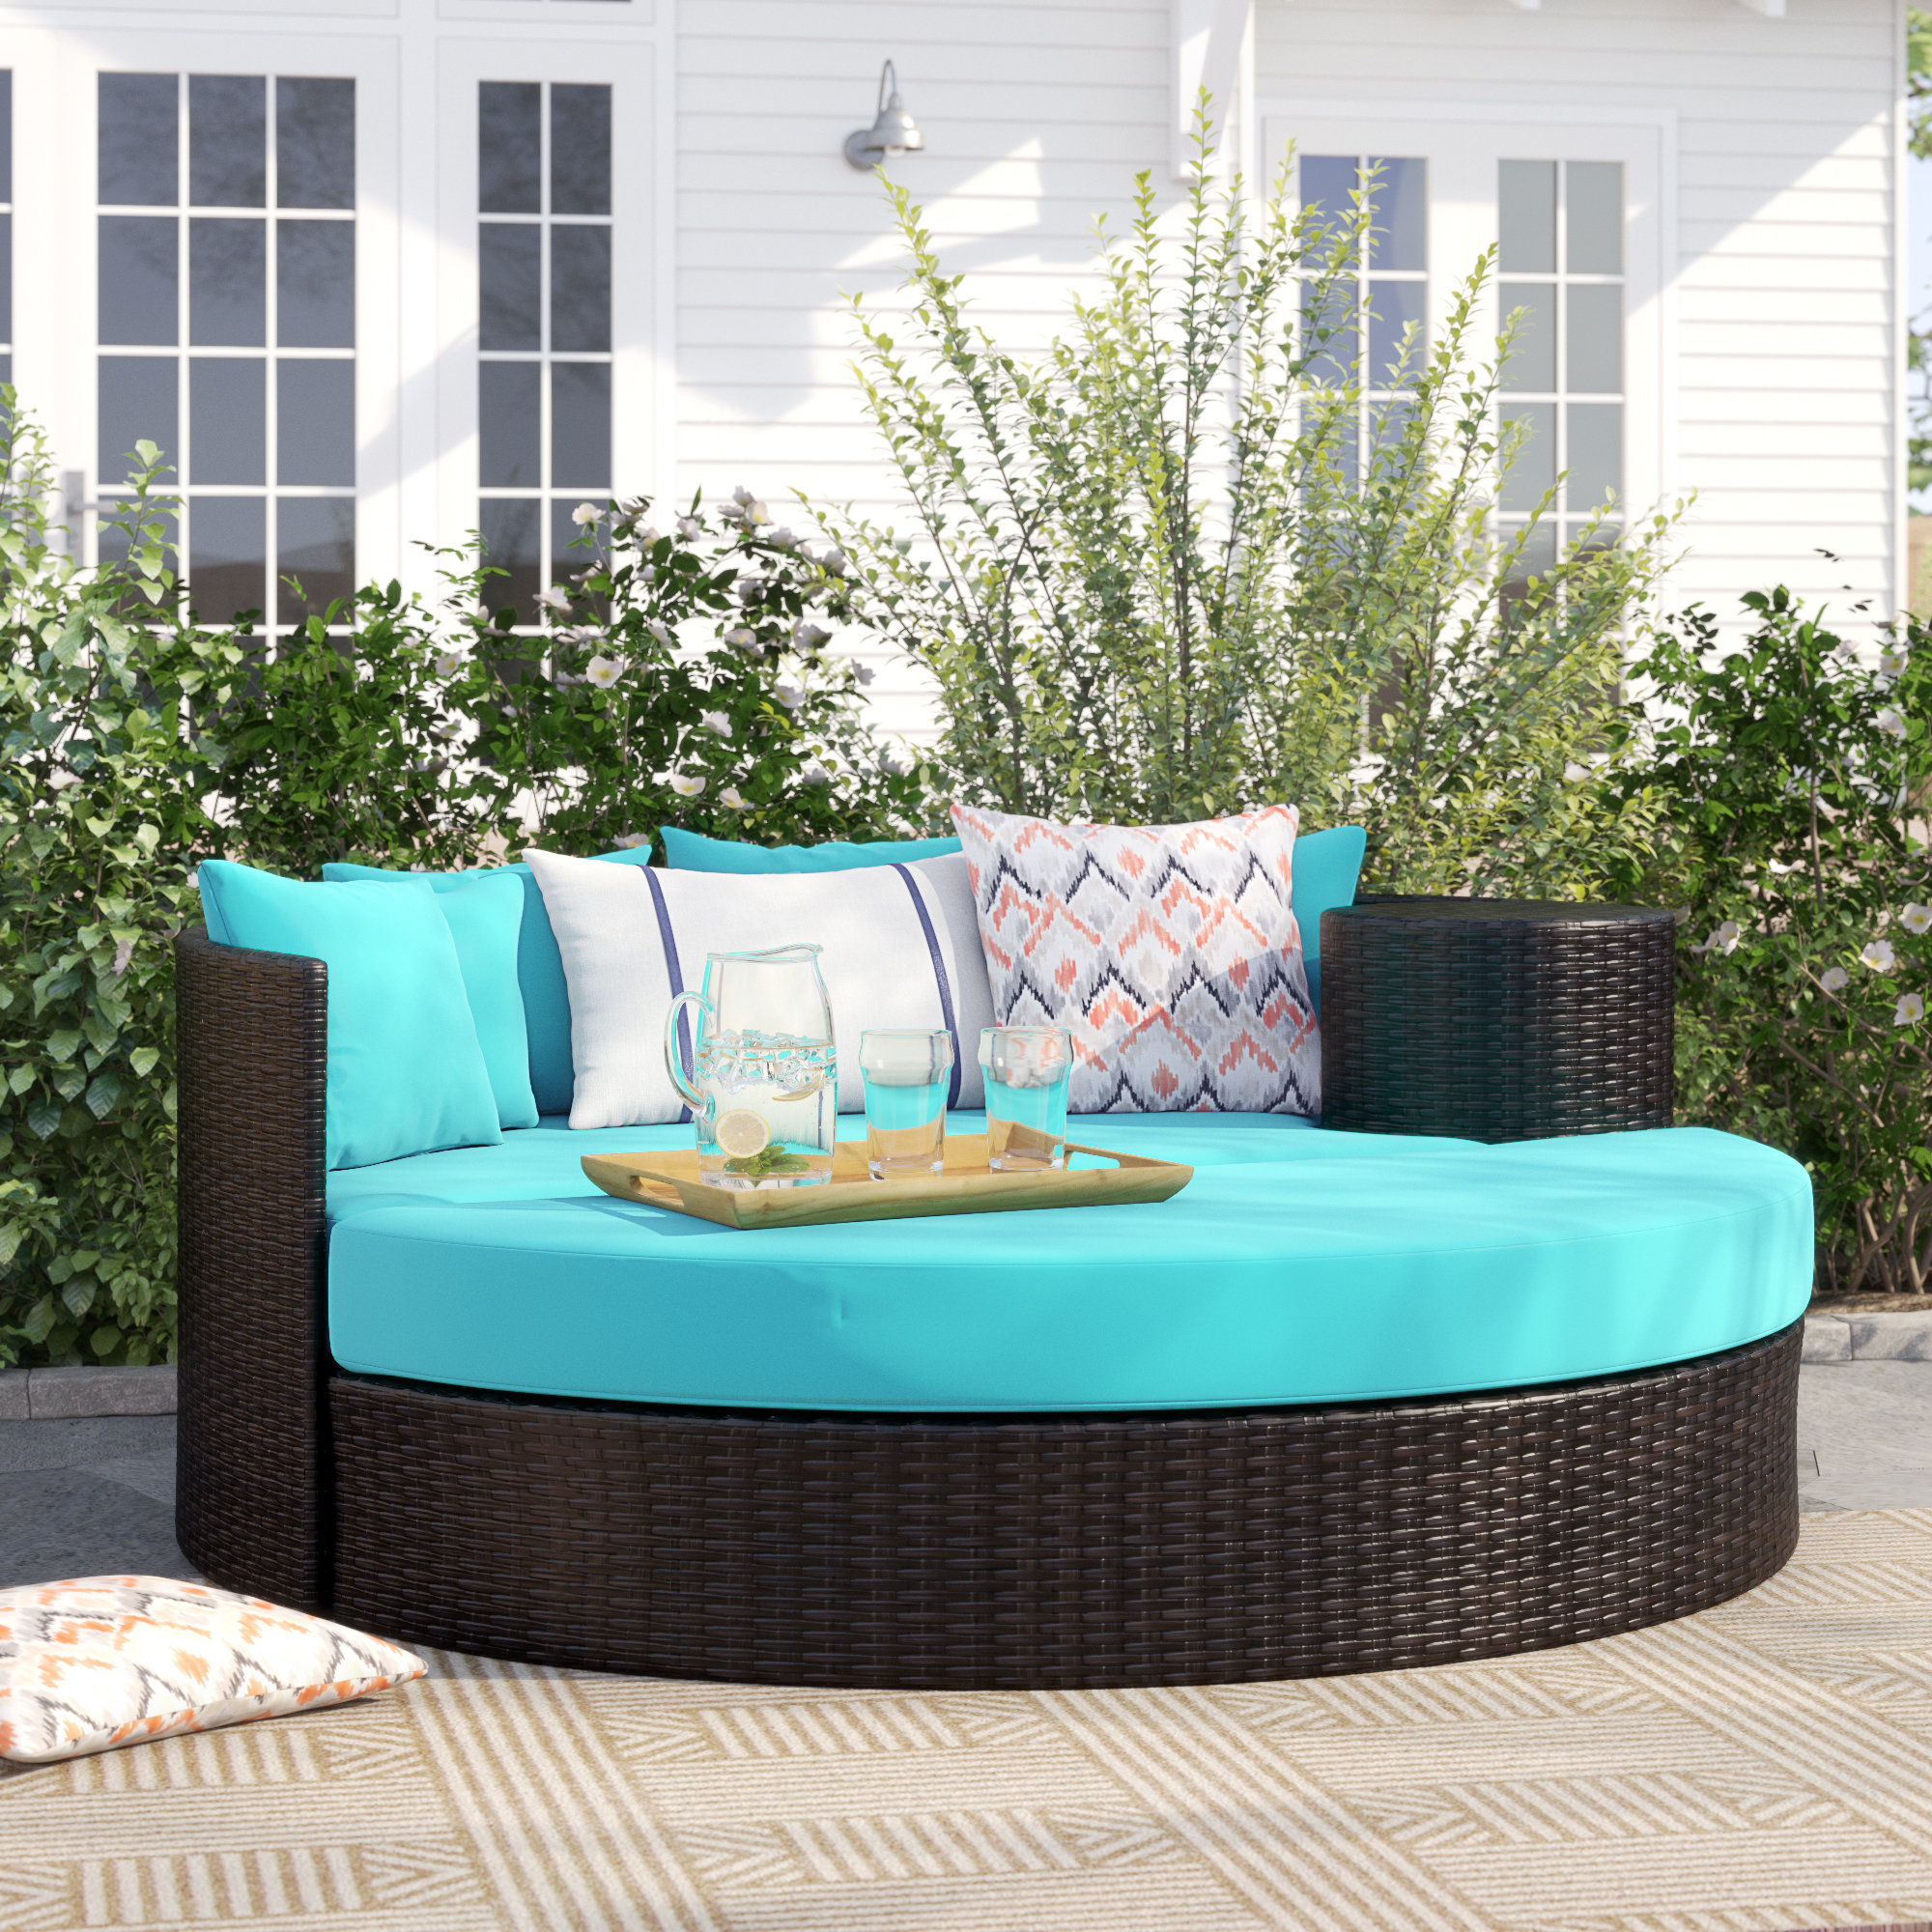 Fashionable Freeport Patio Daybed With Cushion Intended For Carrasco Patio Daybeds With Cushions (View 10 of 20)